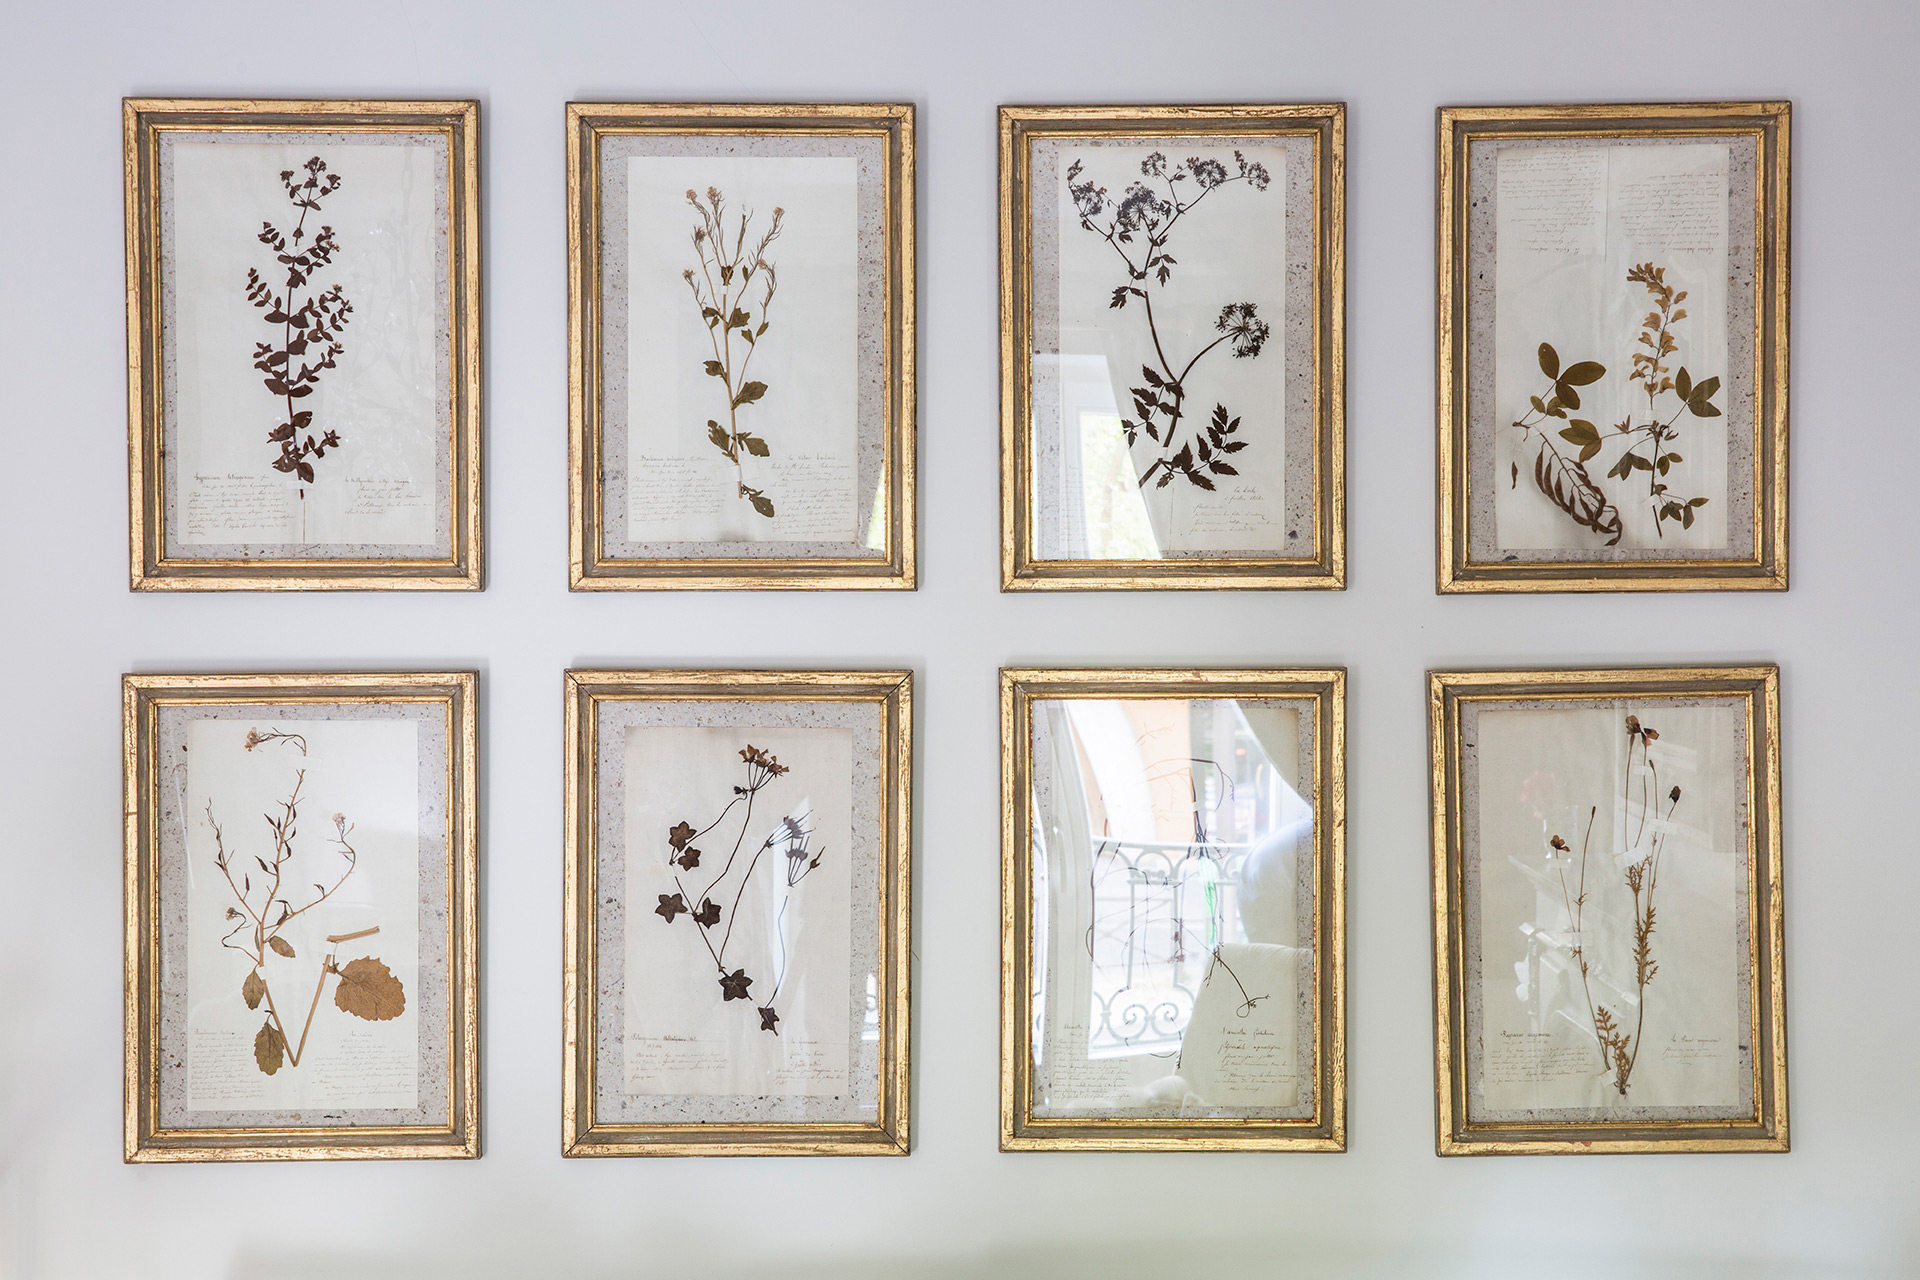 Antique Floral Prints in Living Room of the Beaujolais vacation rental offered by Paris Perfect